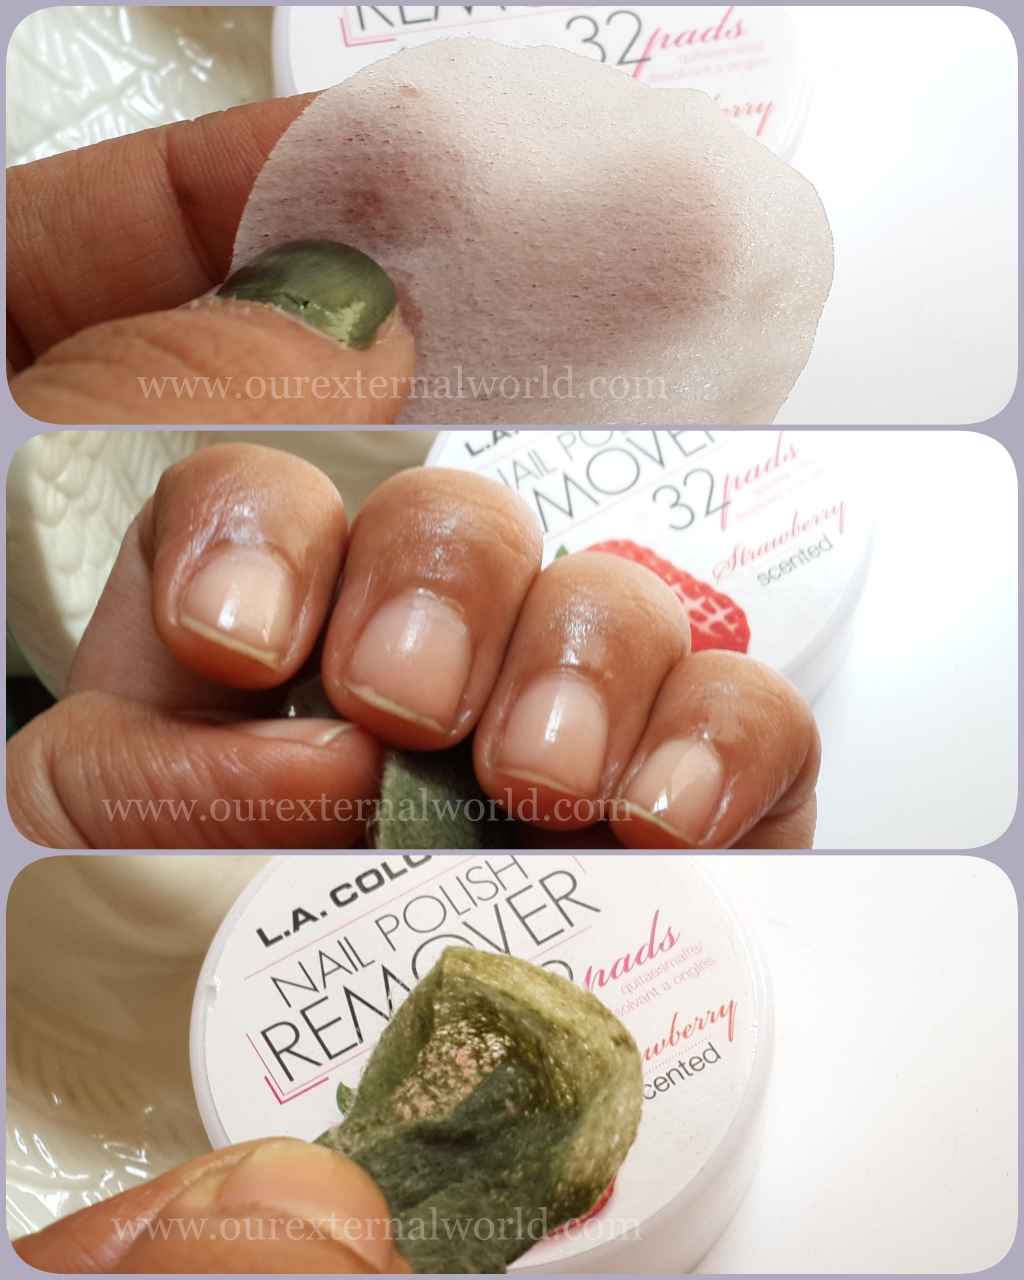 L.A. Colors Nail Polish Remover Pads - Review